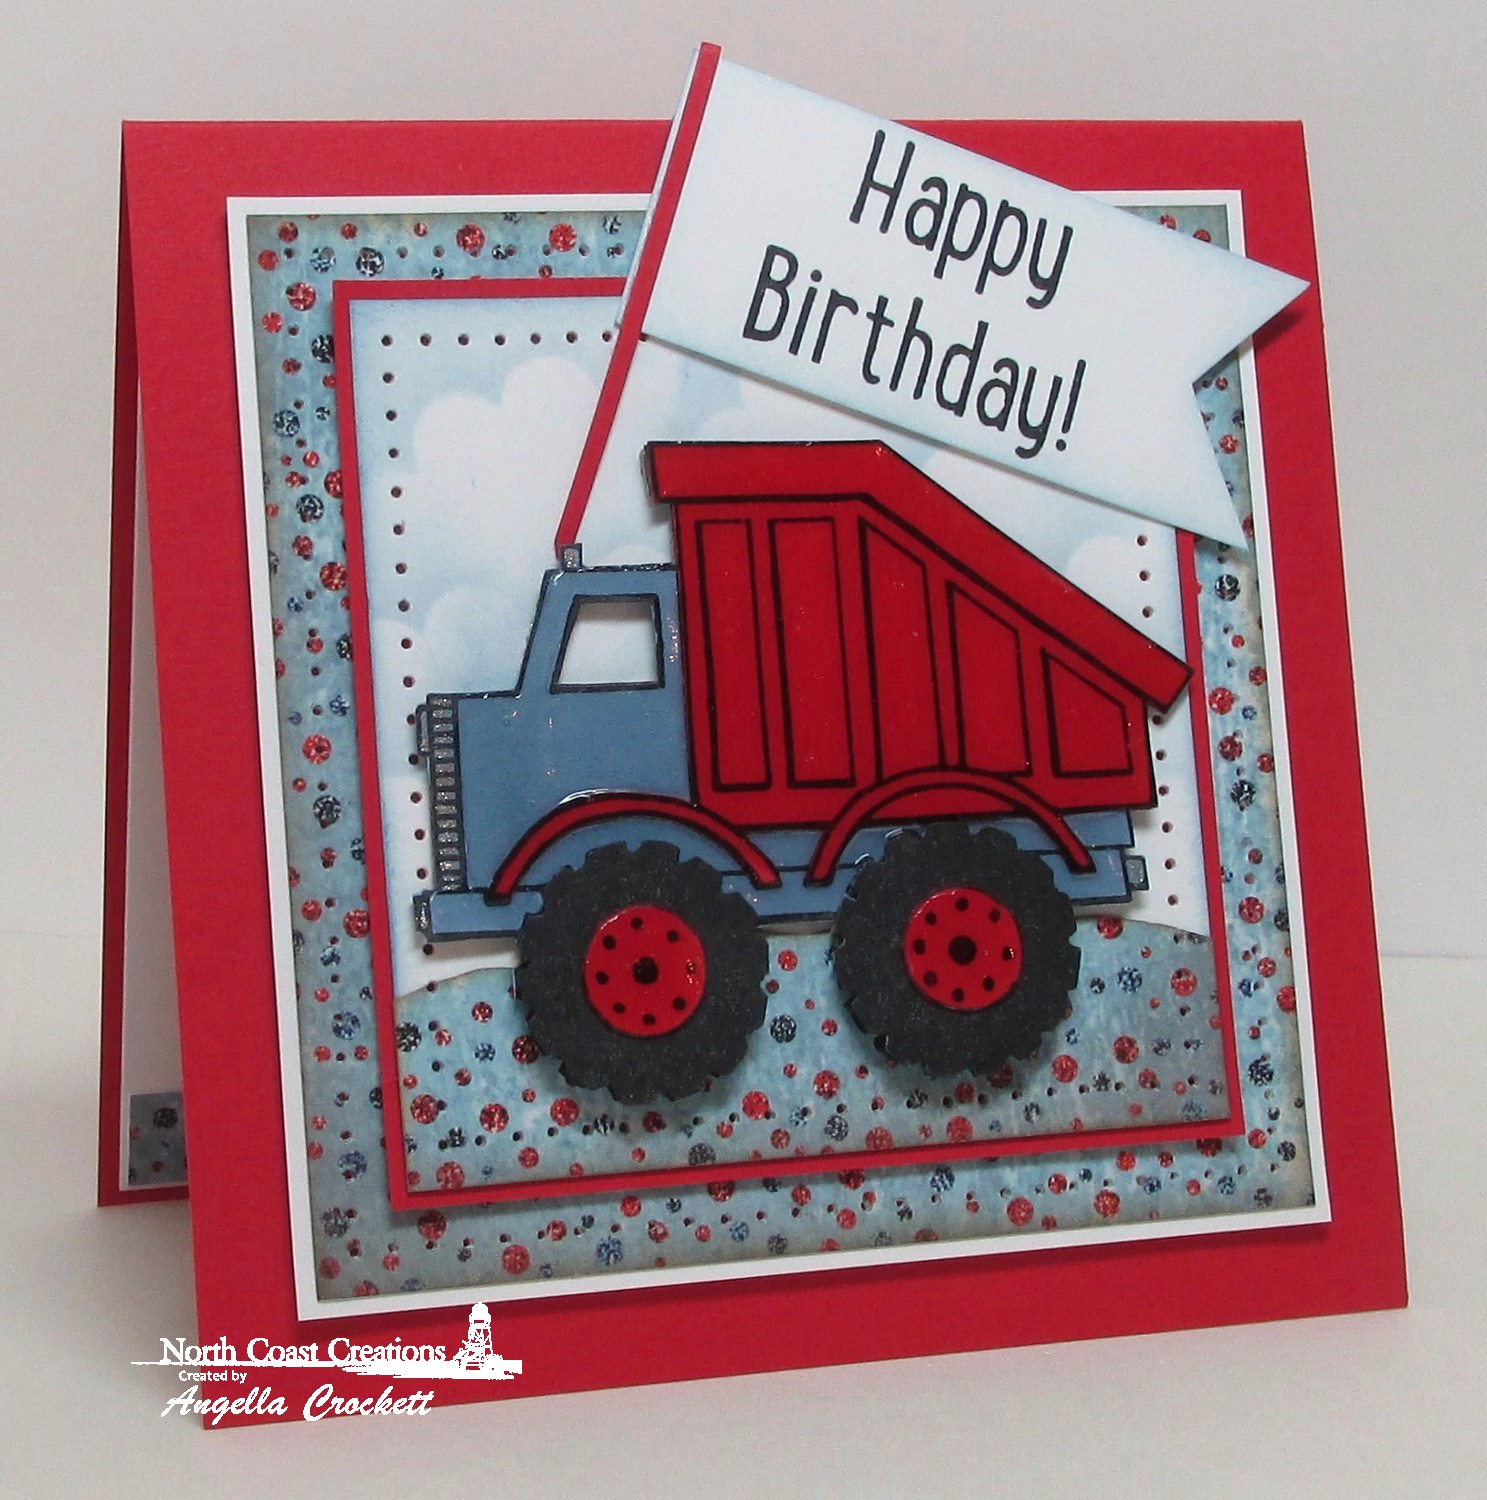 Stamps - North Coast Creations Dump Truck Birthday, Our Daily Bread Designs Custom Pennants Die